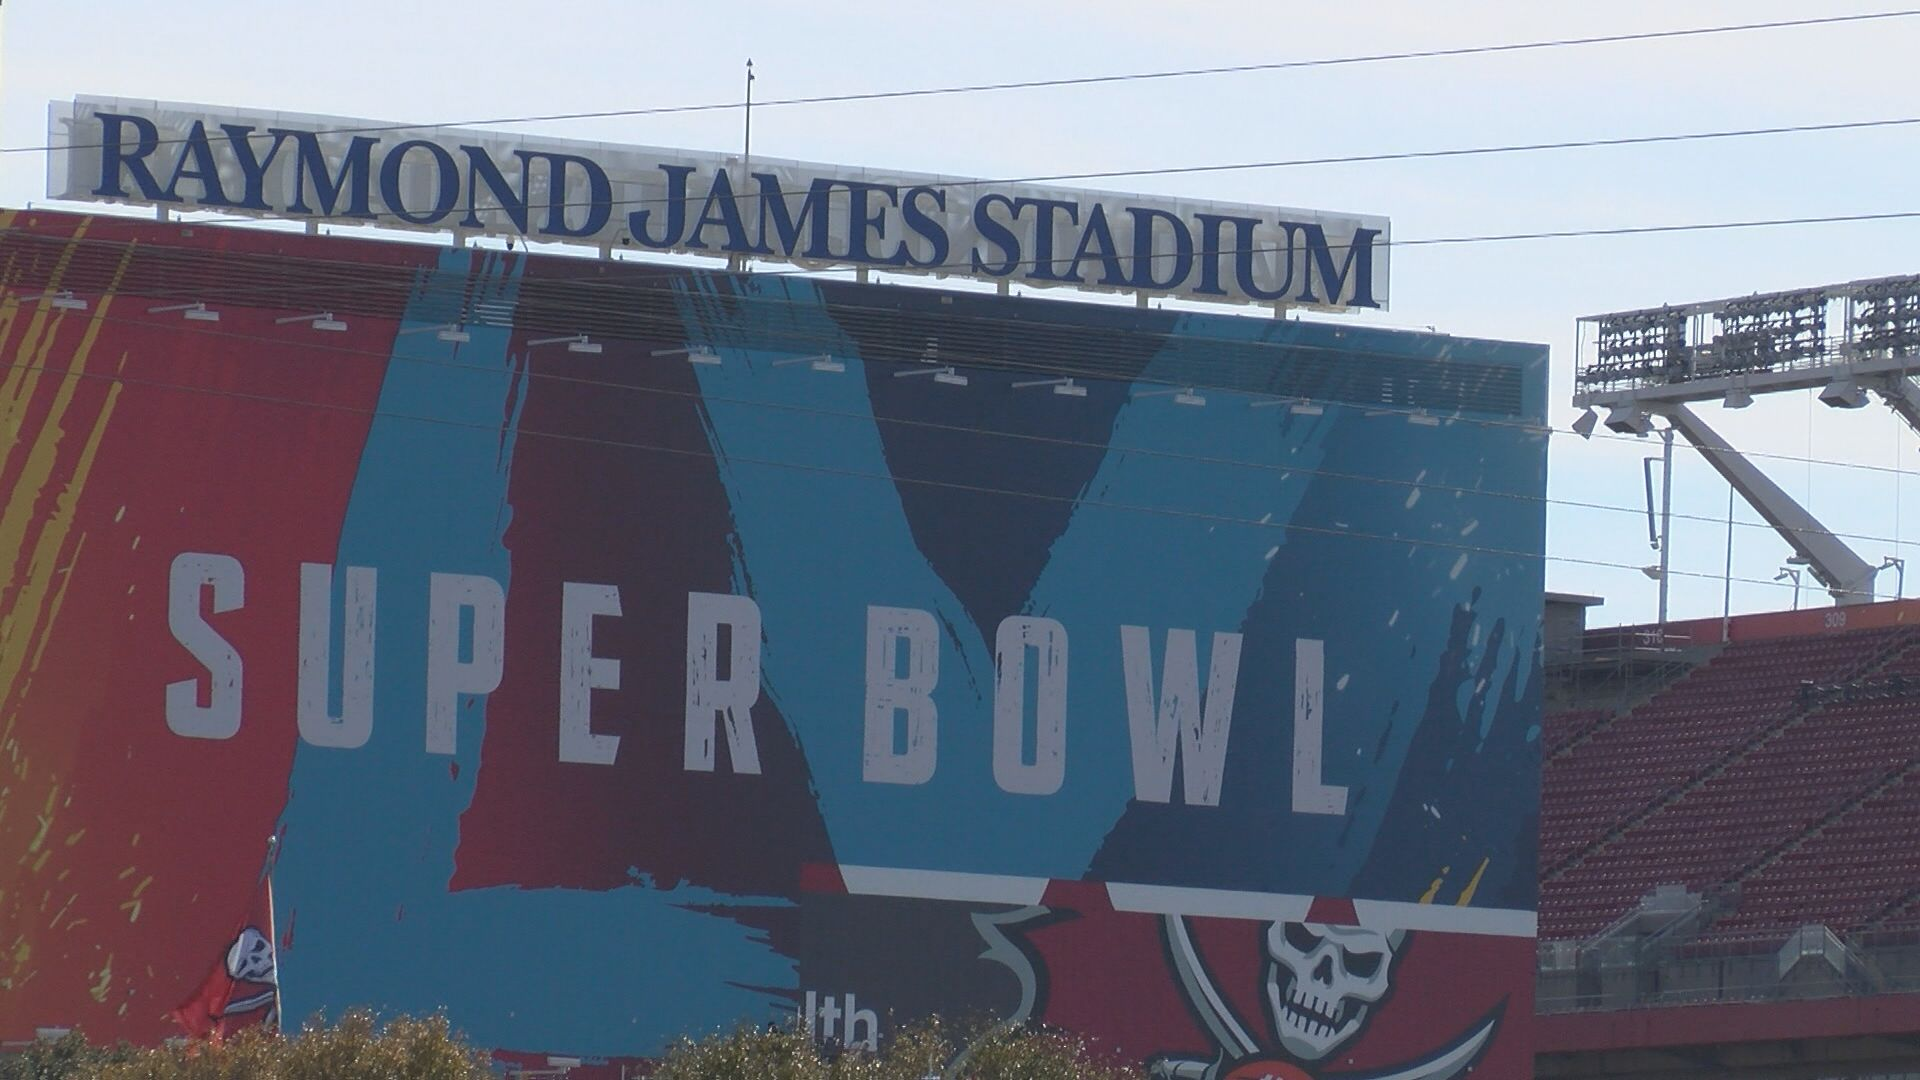 Raymond James Stadium in Tampa, Florida, site of Super Bowl LV. (WFLA)